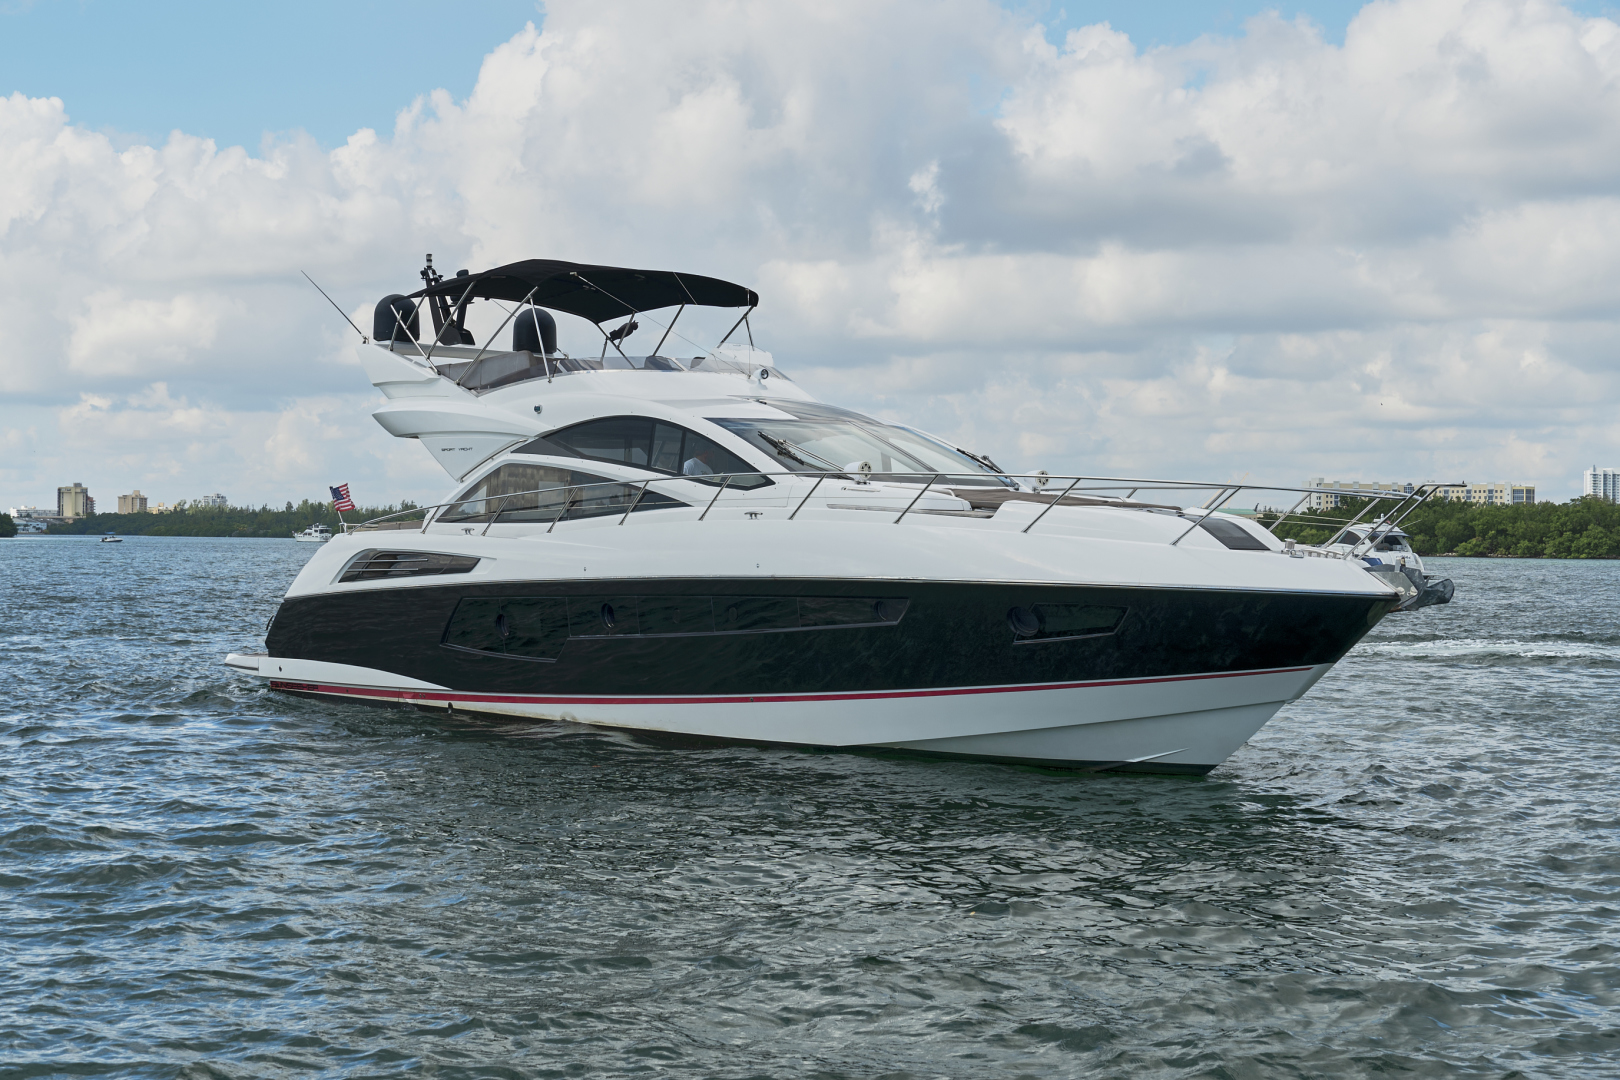 Sunseeker-68 Sport Yacht 2014-New Page Miami Beach-Florida-United States-1581165 | Thumbnail